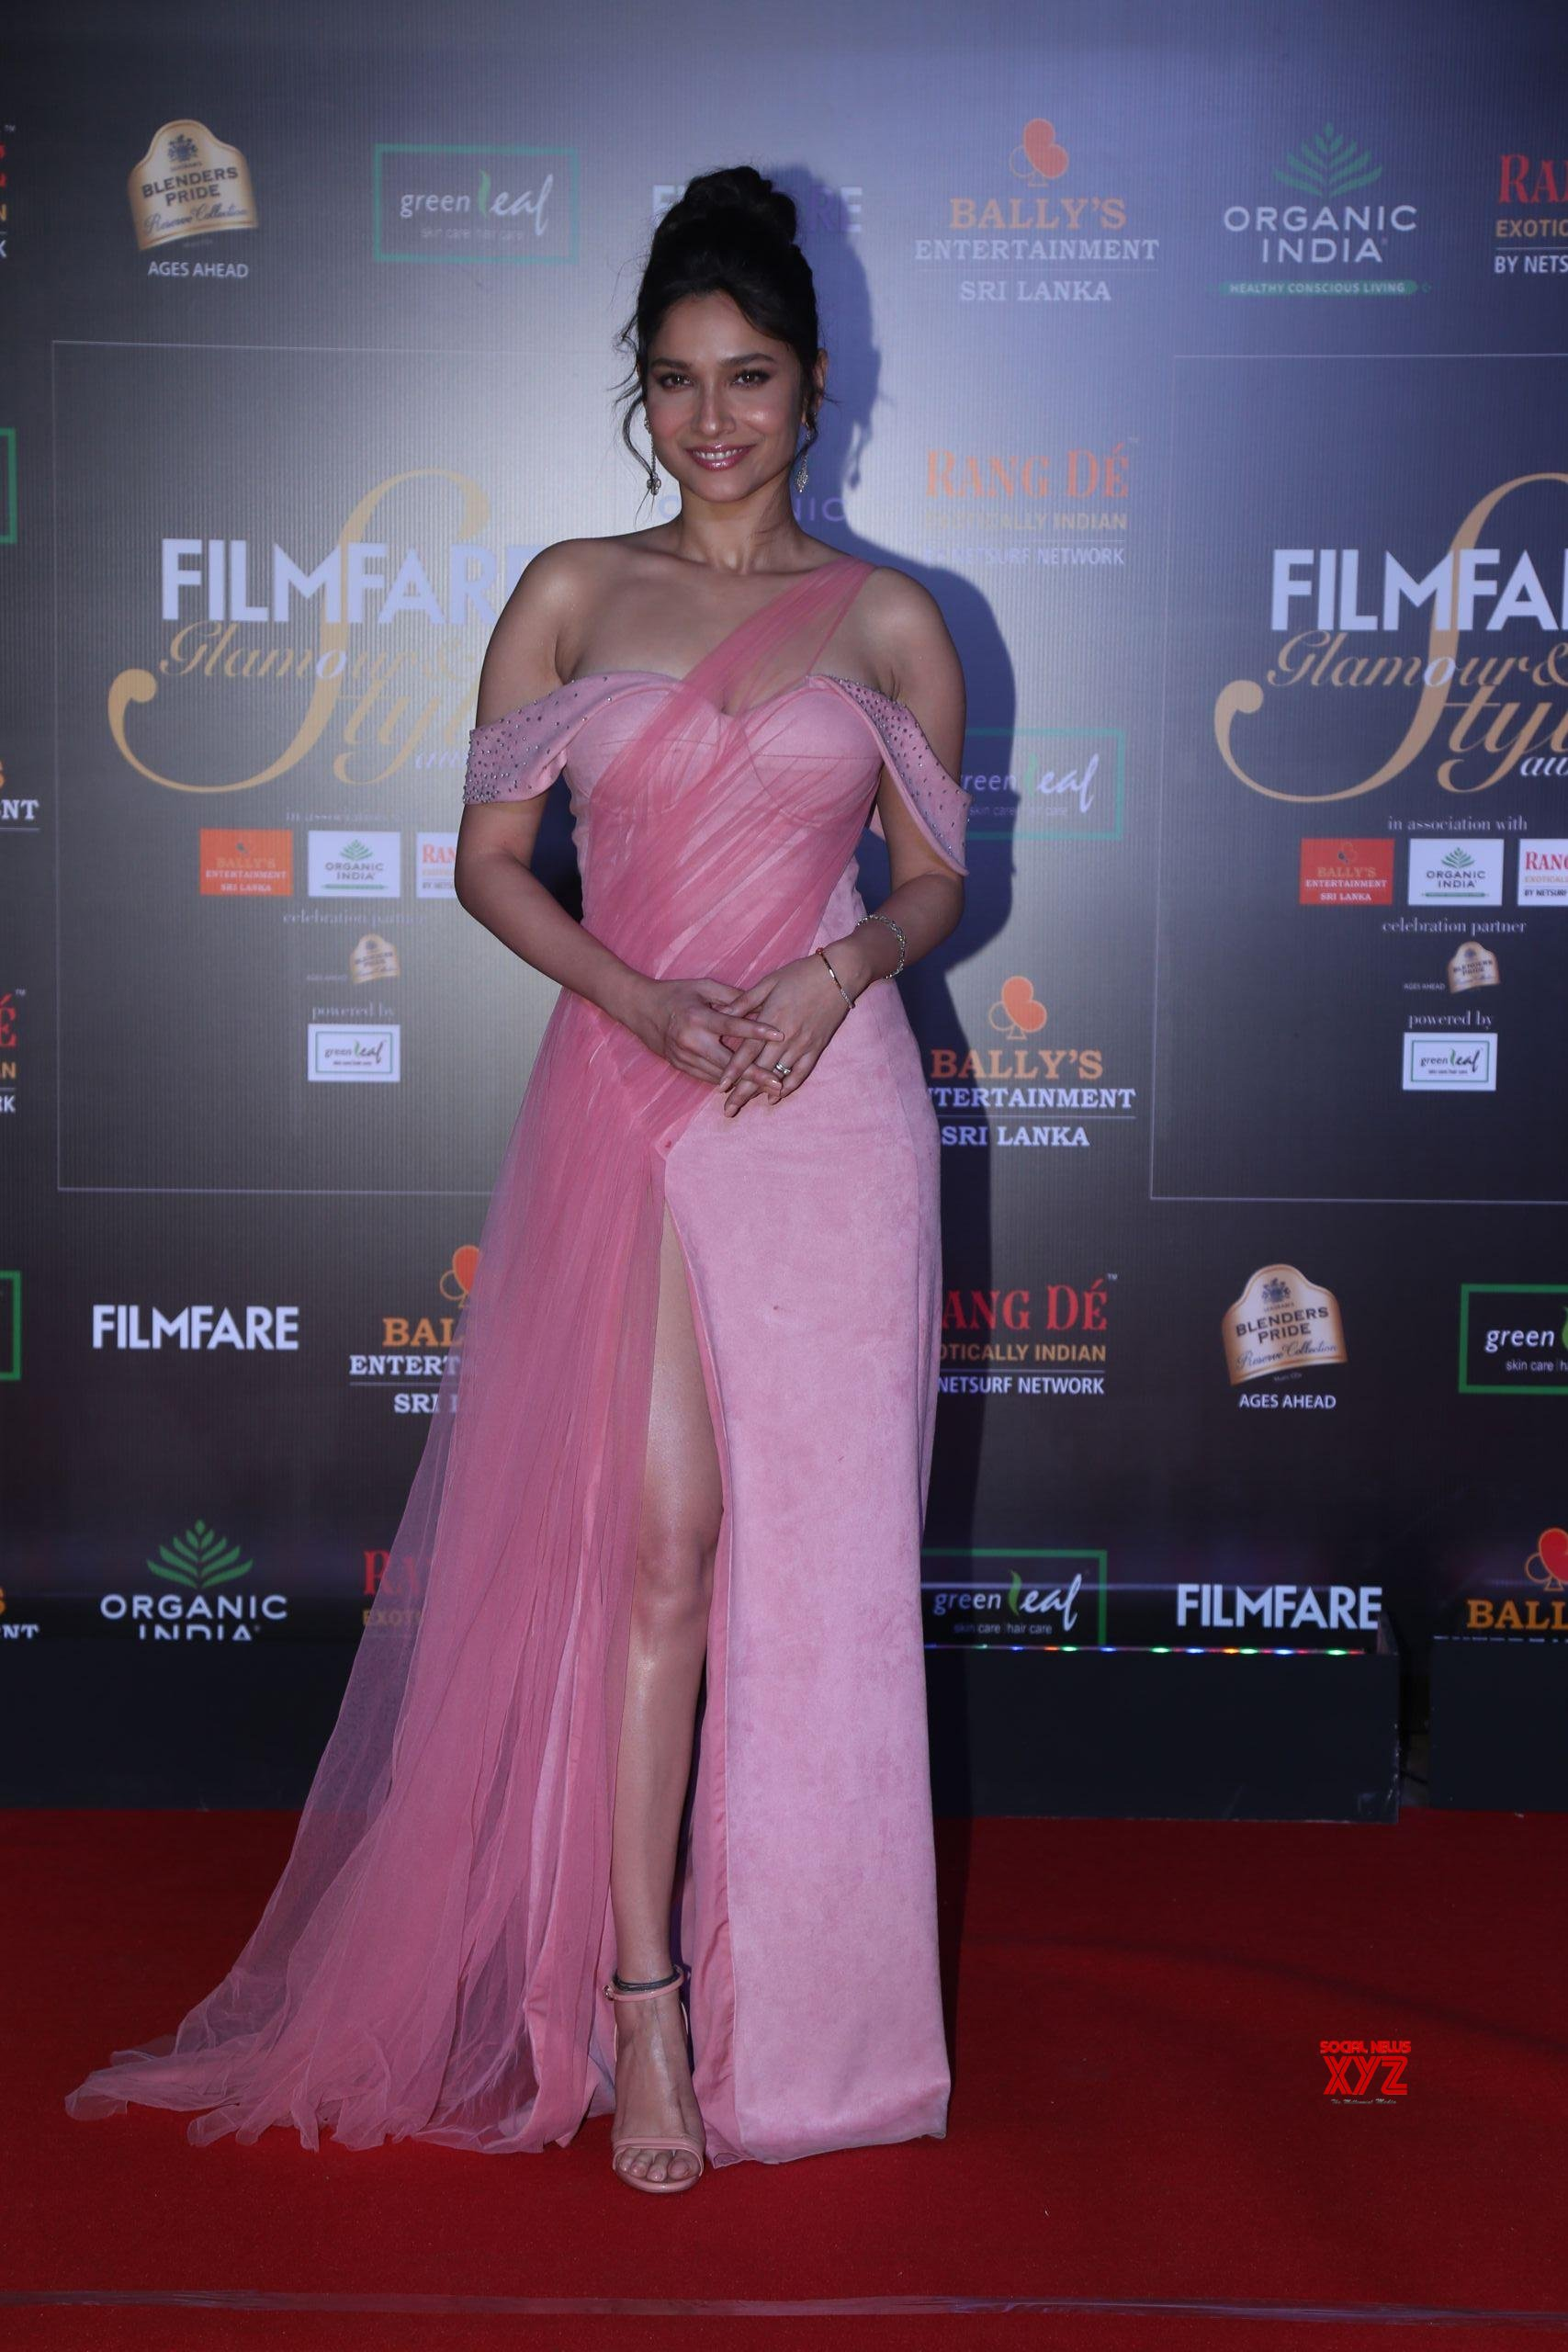 Actress Ankita Lokhande Hot HD Stills From Filmfare Glamour And Style Awards 2019 Red Carpet